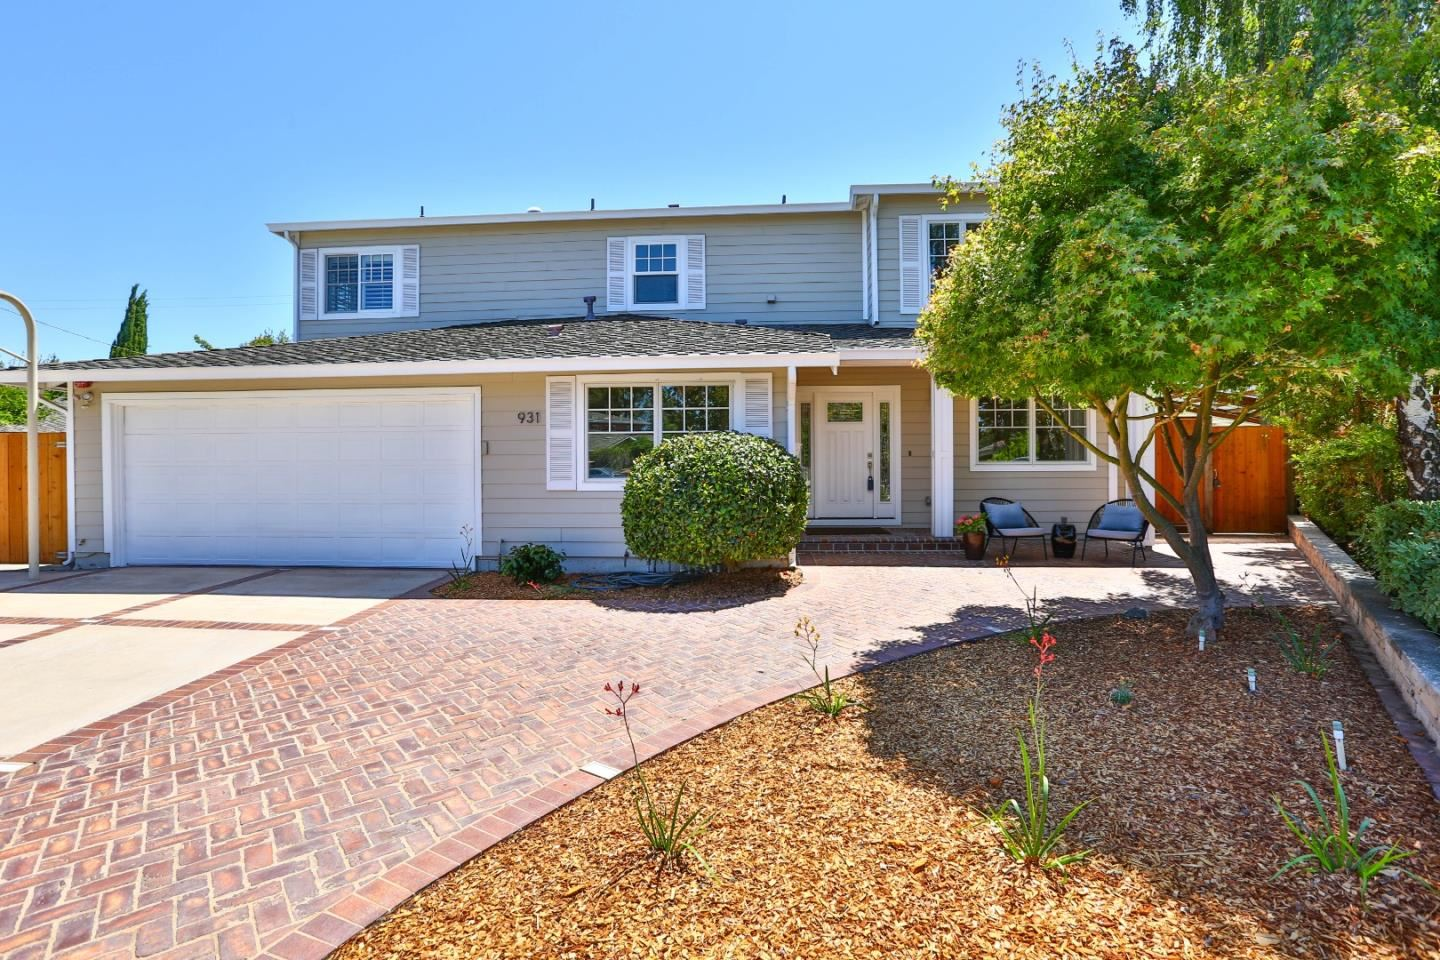 Photo for 931 New Haven Court, CUPERTINO, CA 95014 (MLS # ML81853486)